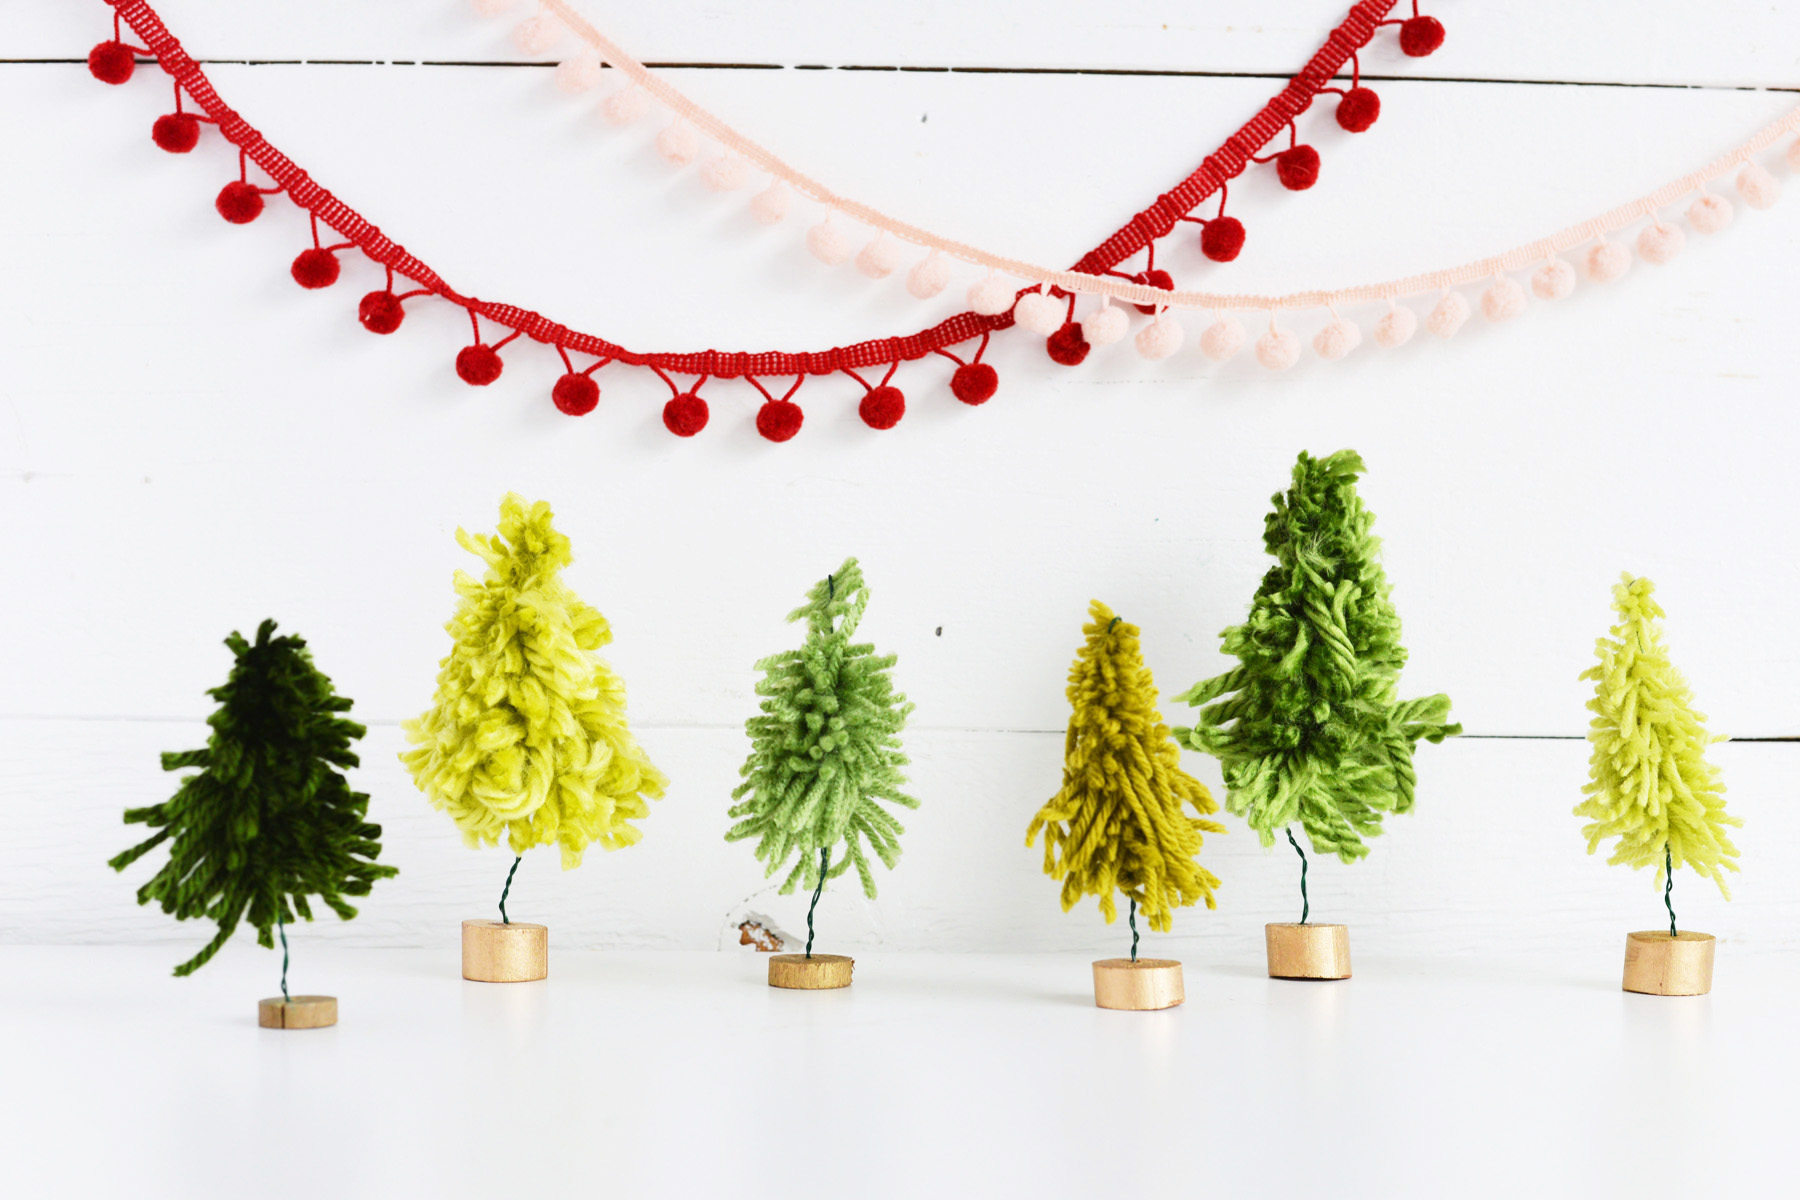 20 Miniature Christmas Trees Ready To Test Your Diy Skills